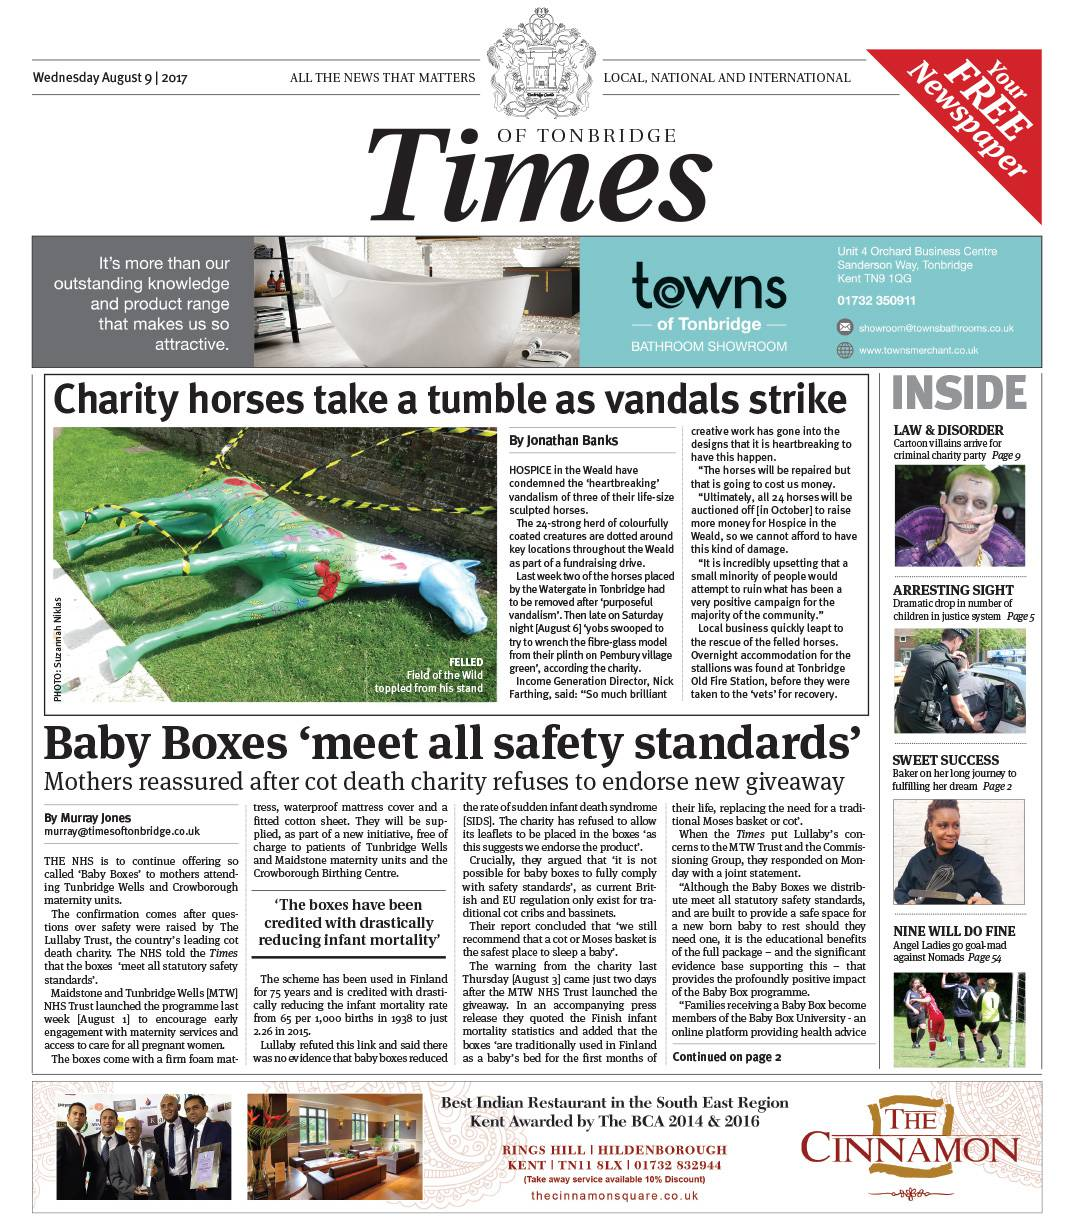 Read the Times of Tonbridge 9th August 2017